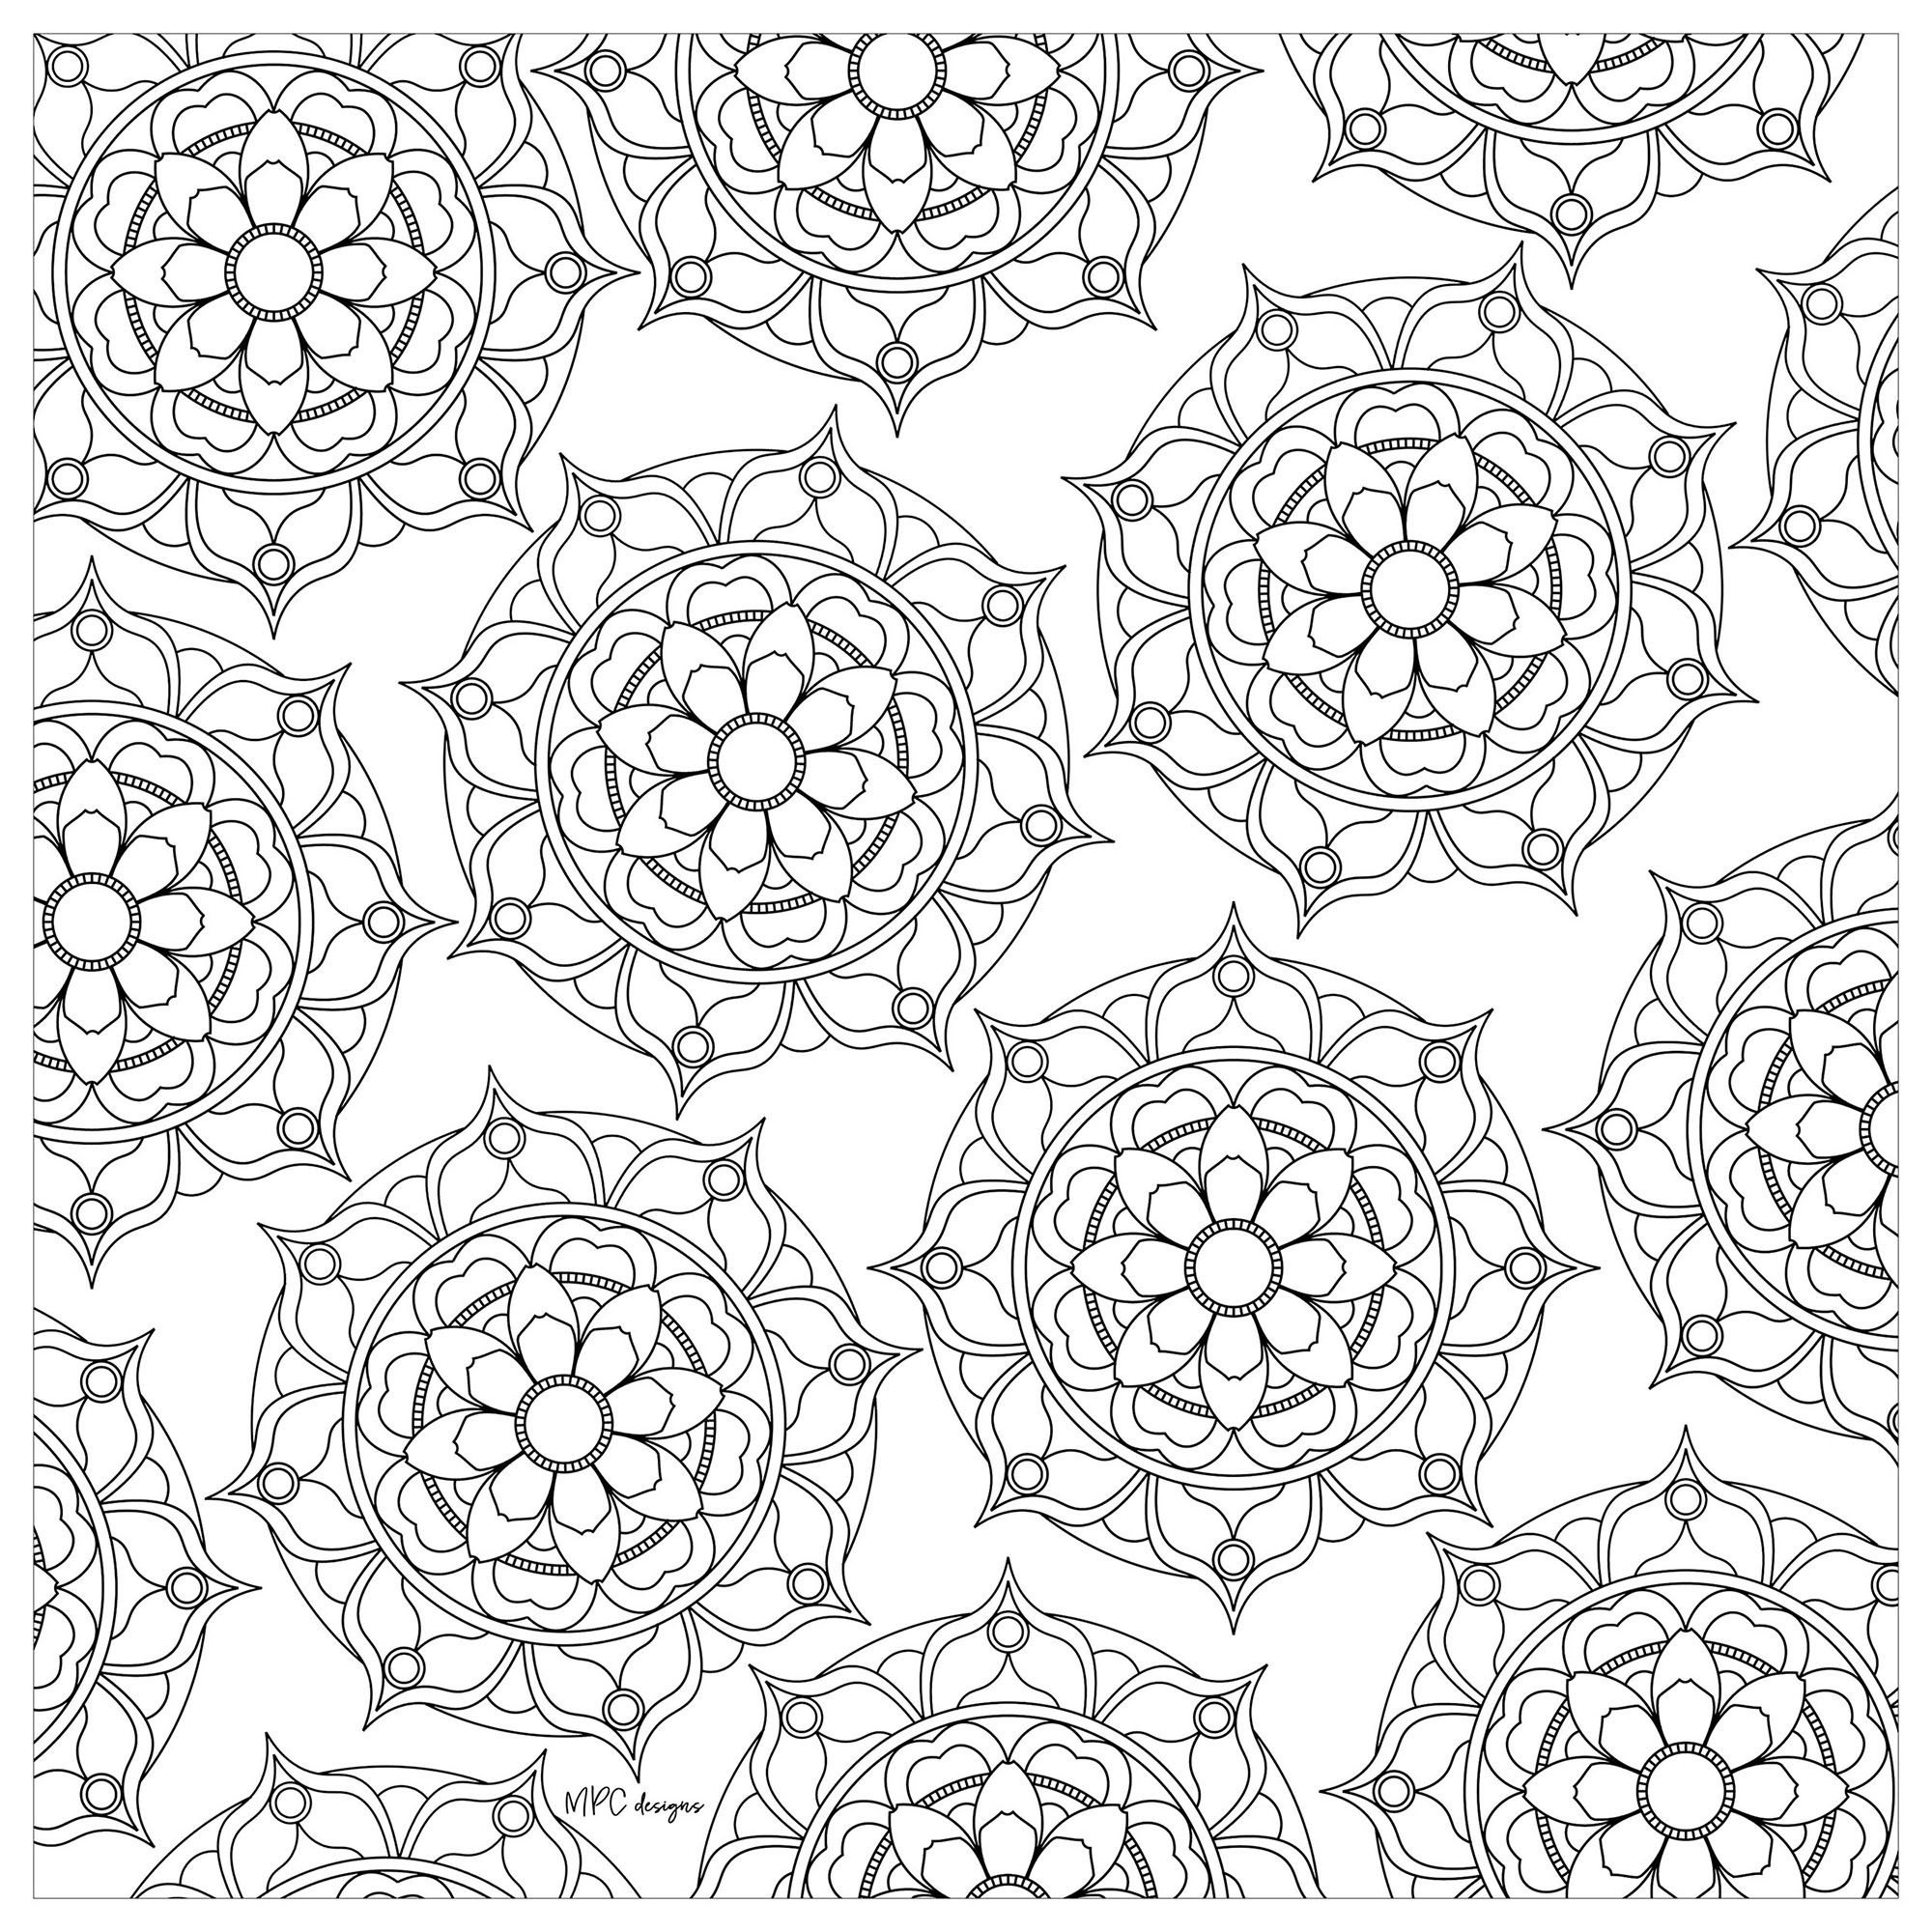 Multiple Mandalas | From the gallery : Mandalas | Artist : MPC Design